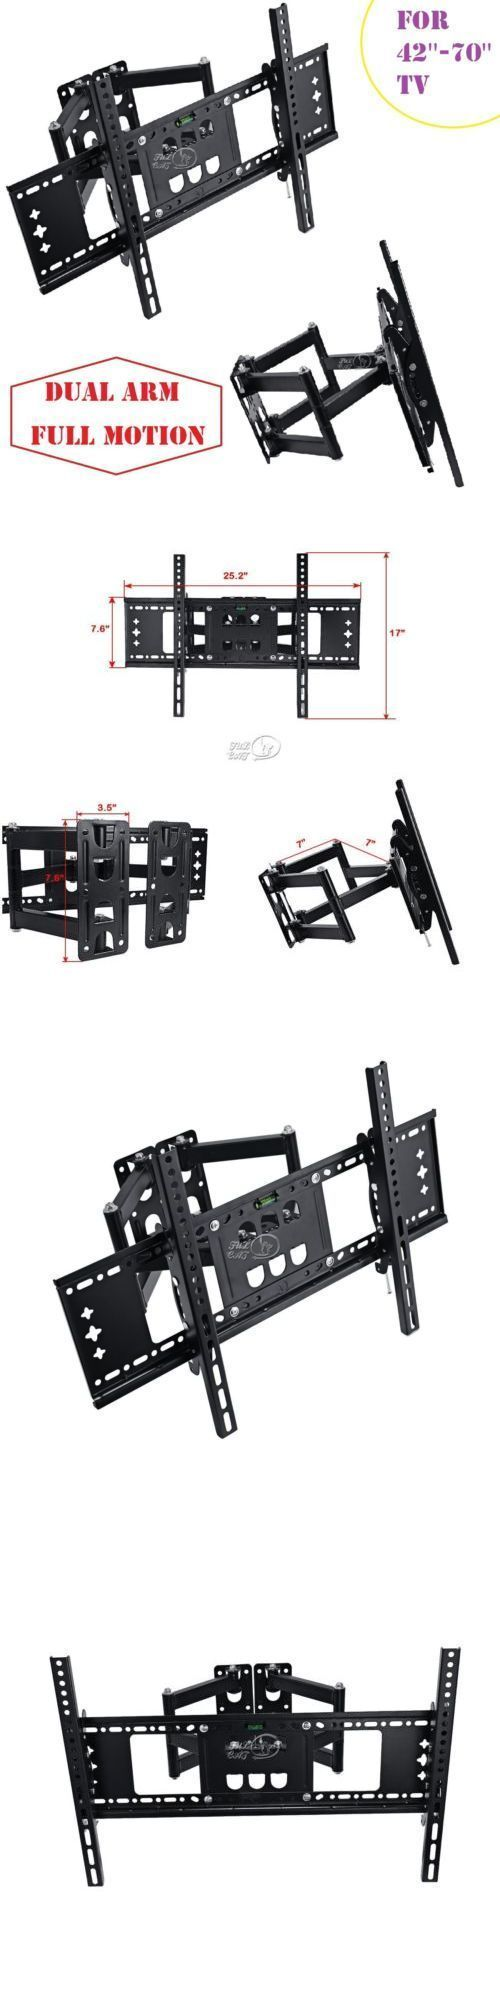 TV Mounts and Brackets: Full Motion Tv Wall Mount Bracket For 42 46 50 55 60 65 70 Inches Lcd Led Tvs BUY IT NOW ONLY: $34.39